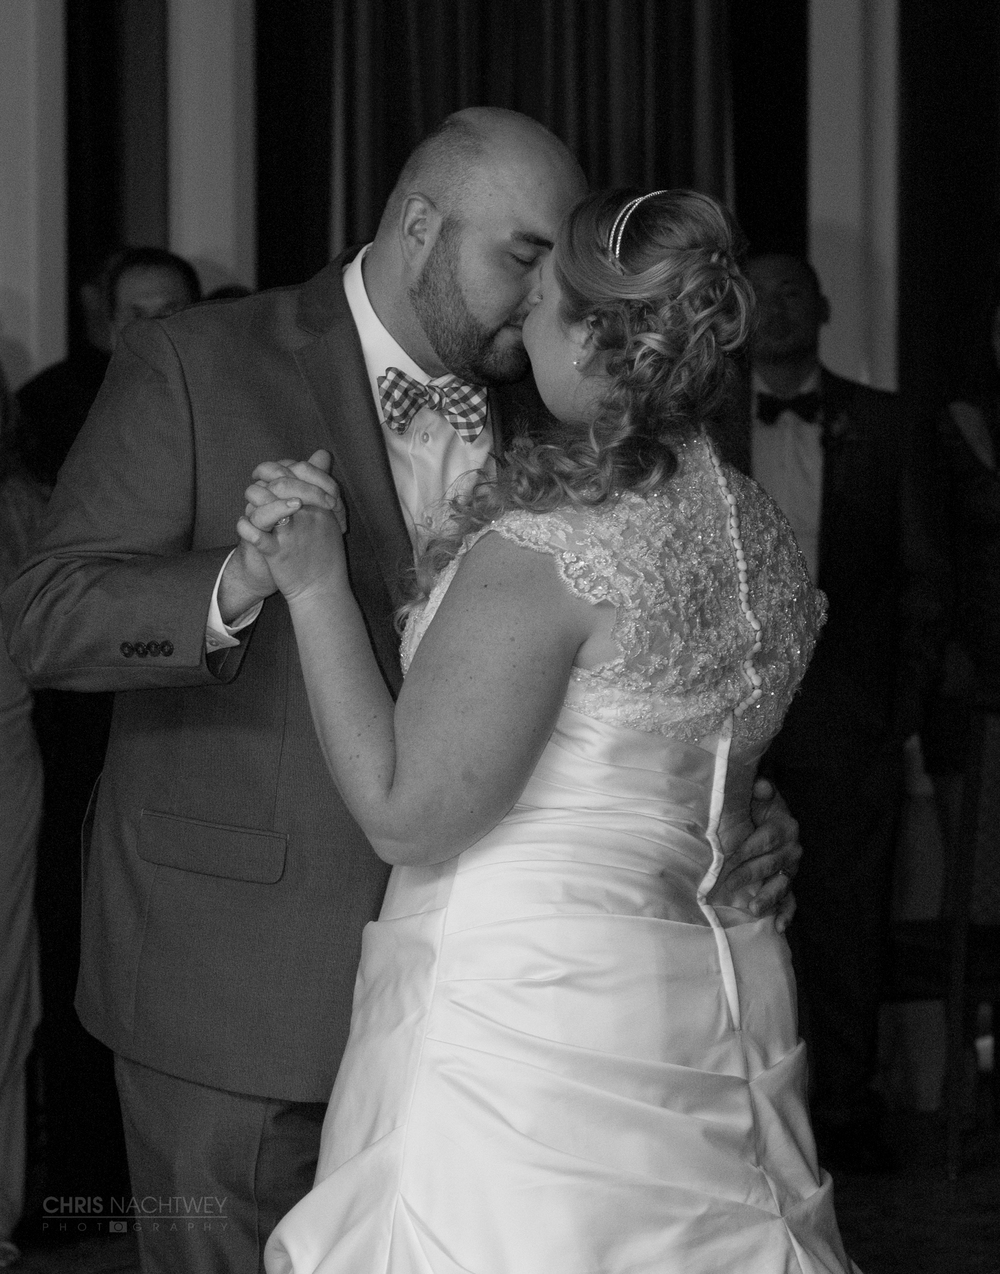 lake-of-isles-wedding-first-dance-photos-chris-nachtwey.jpg